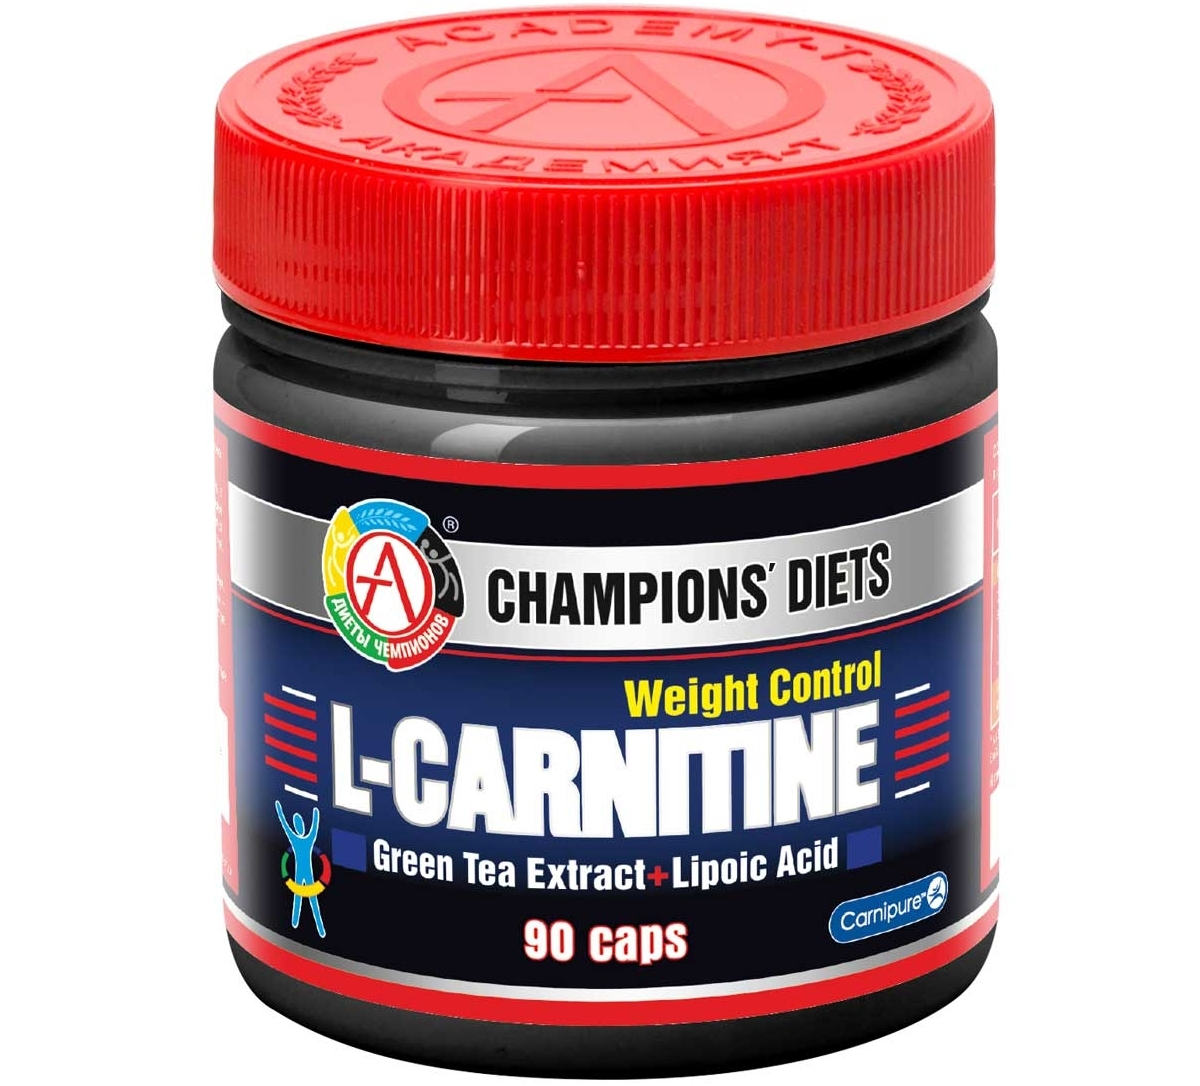 АКАДЕМИЯ-Т • L-carnitine Weight Control • 90 капс